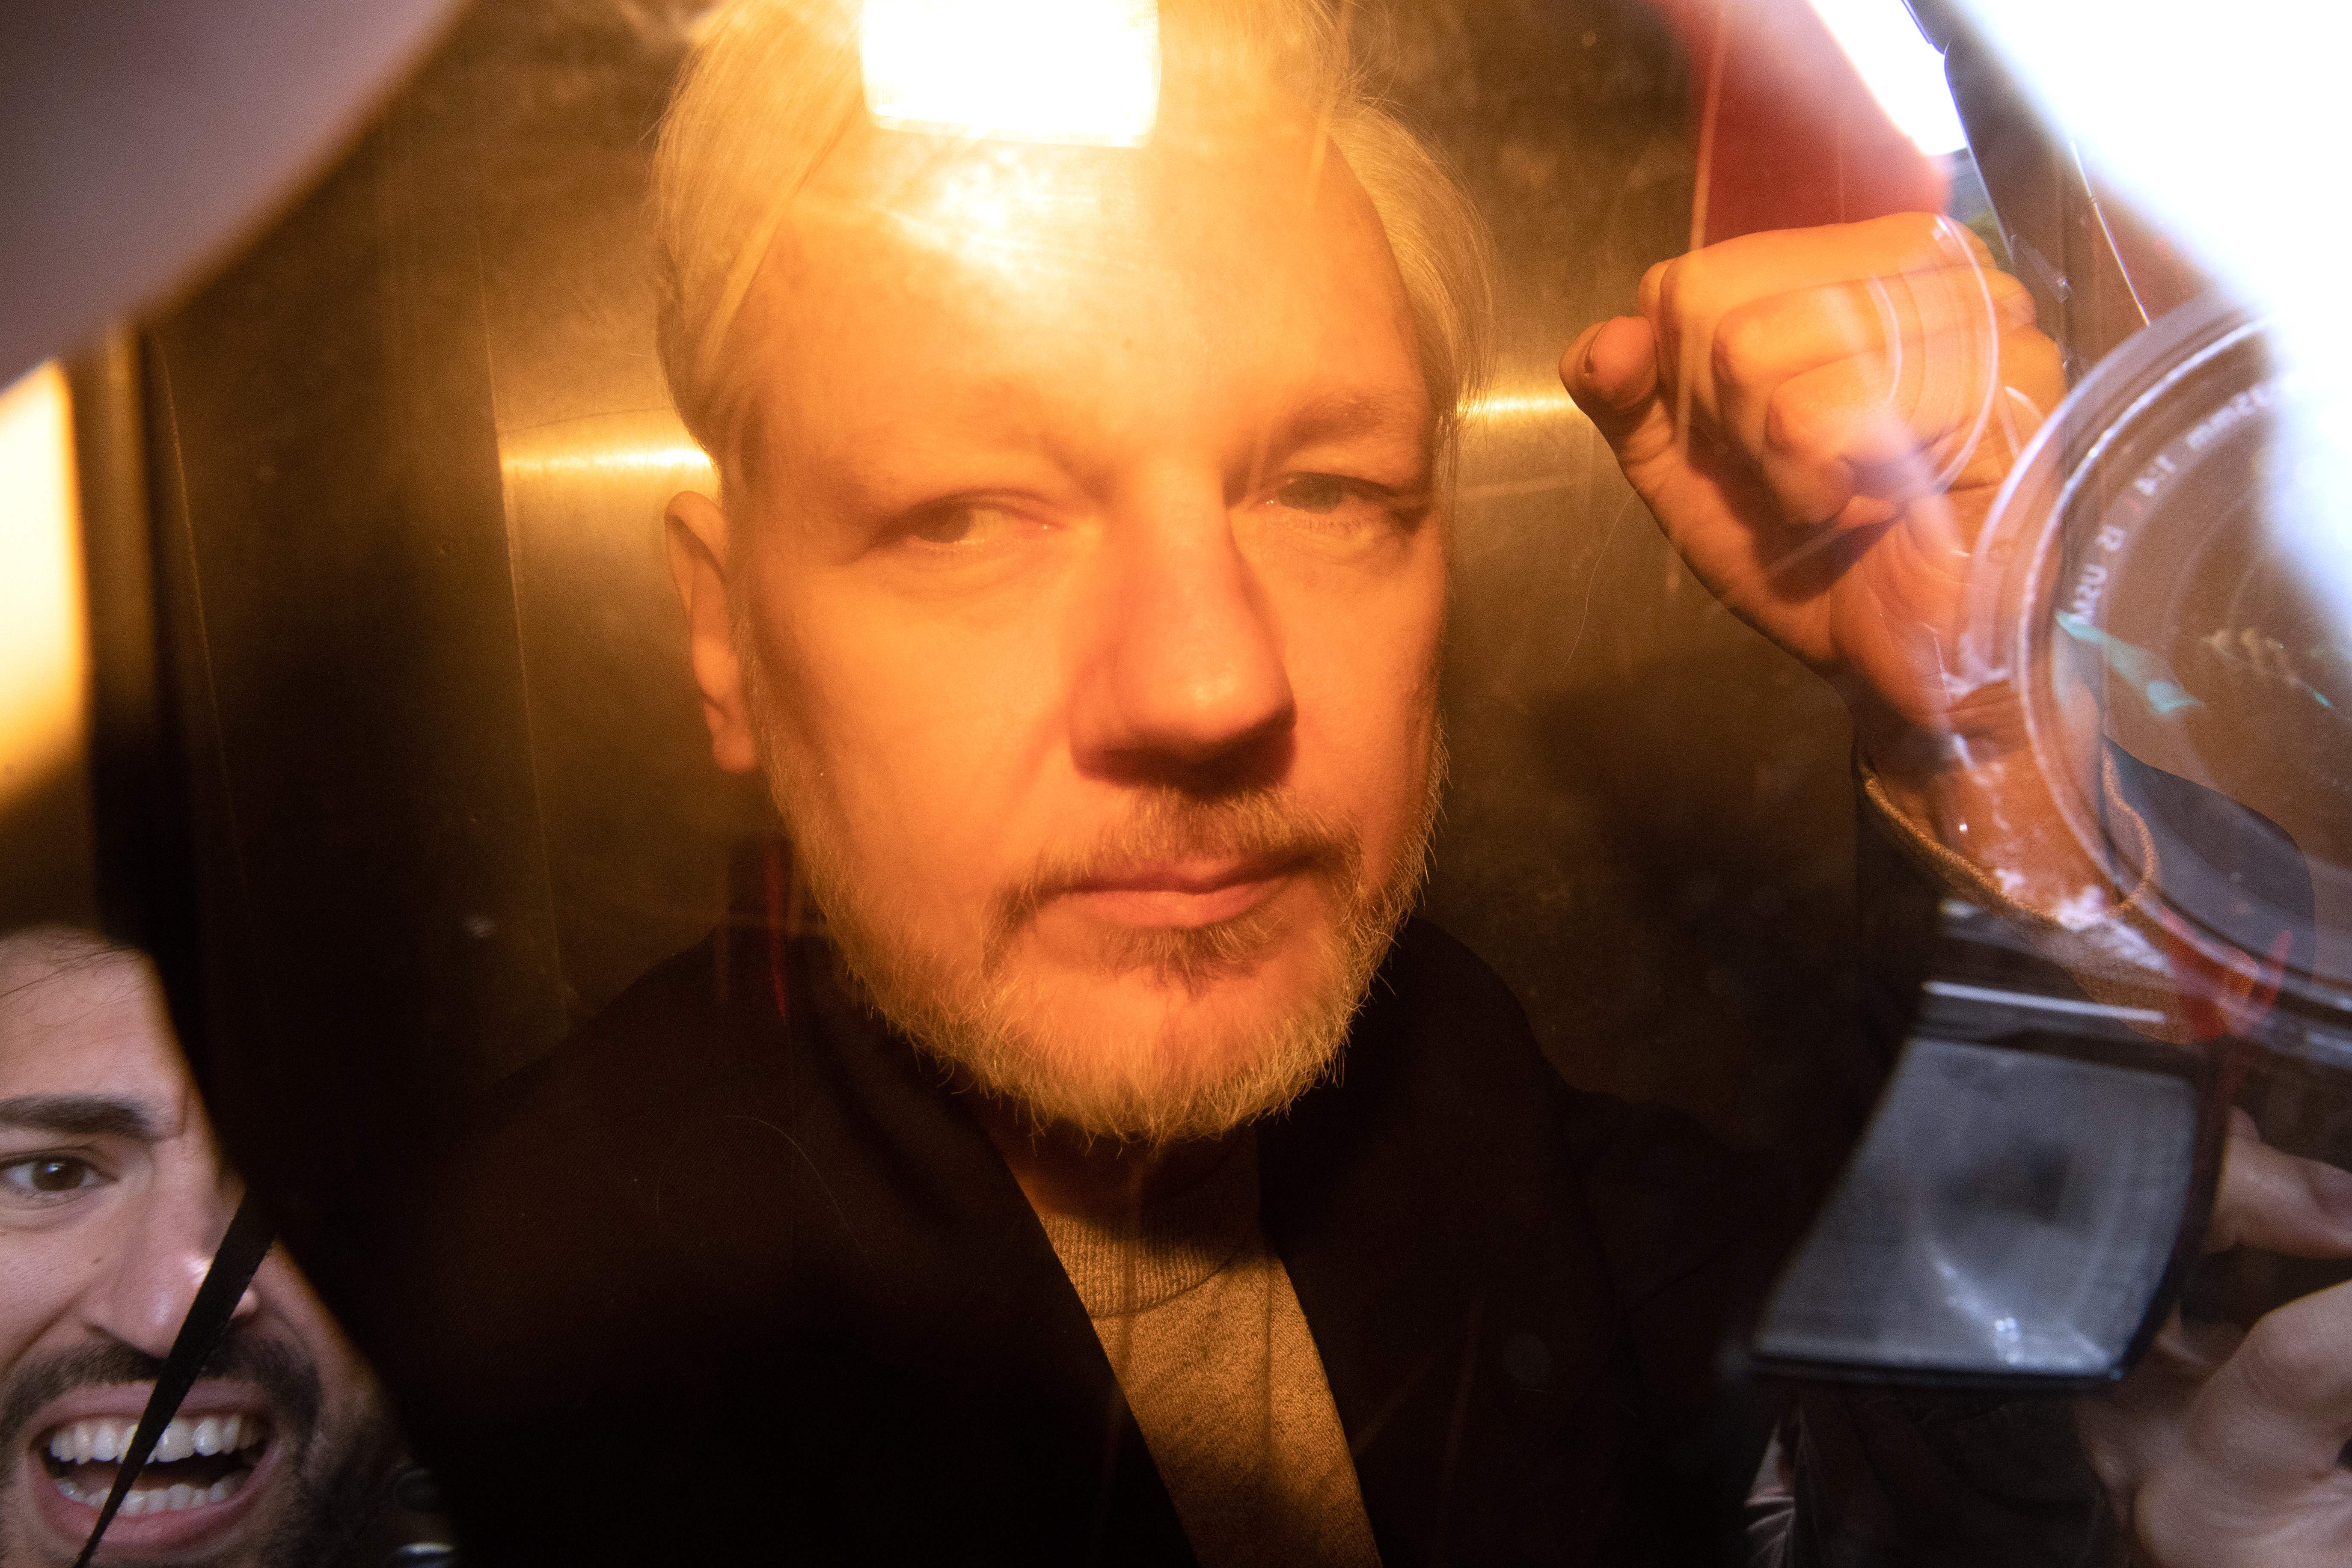 Trump offered WikiLeaks' Julian Assange a pardon if he covered up Russian hacking of Democrats, lawyer tells court